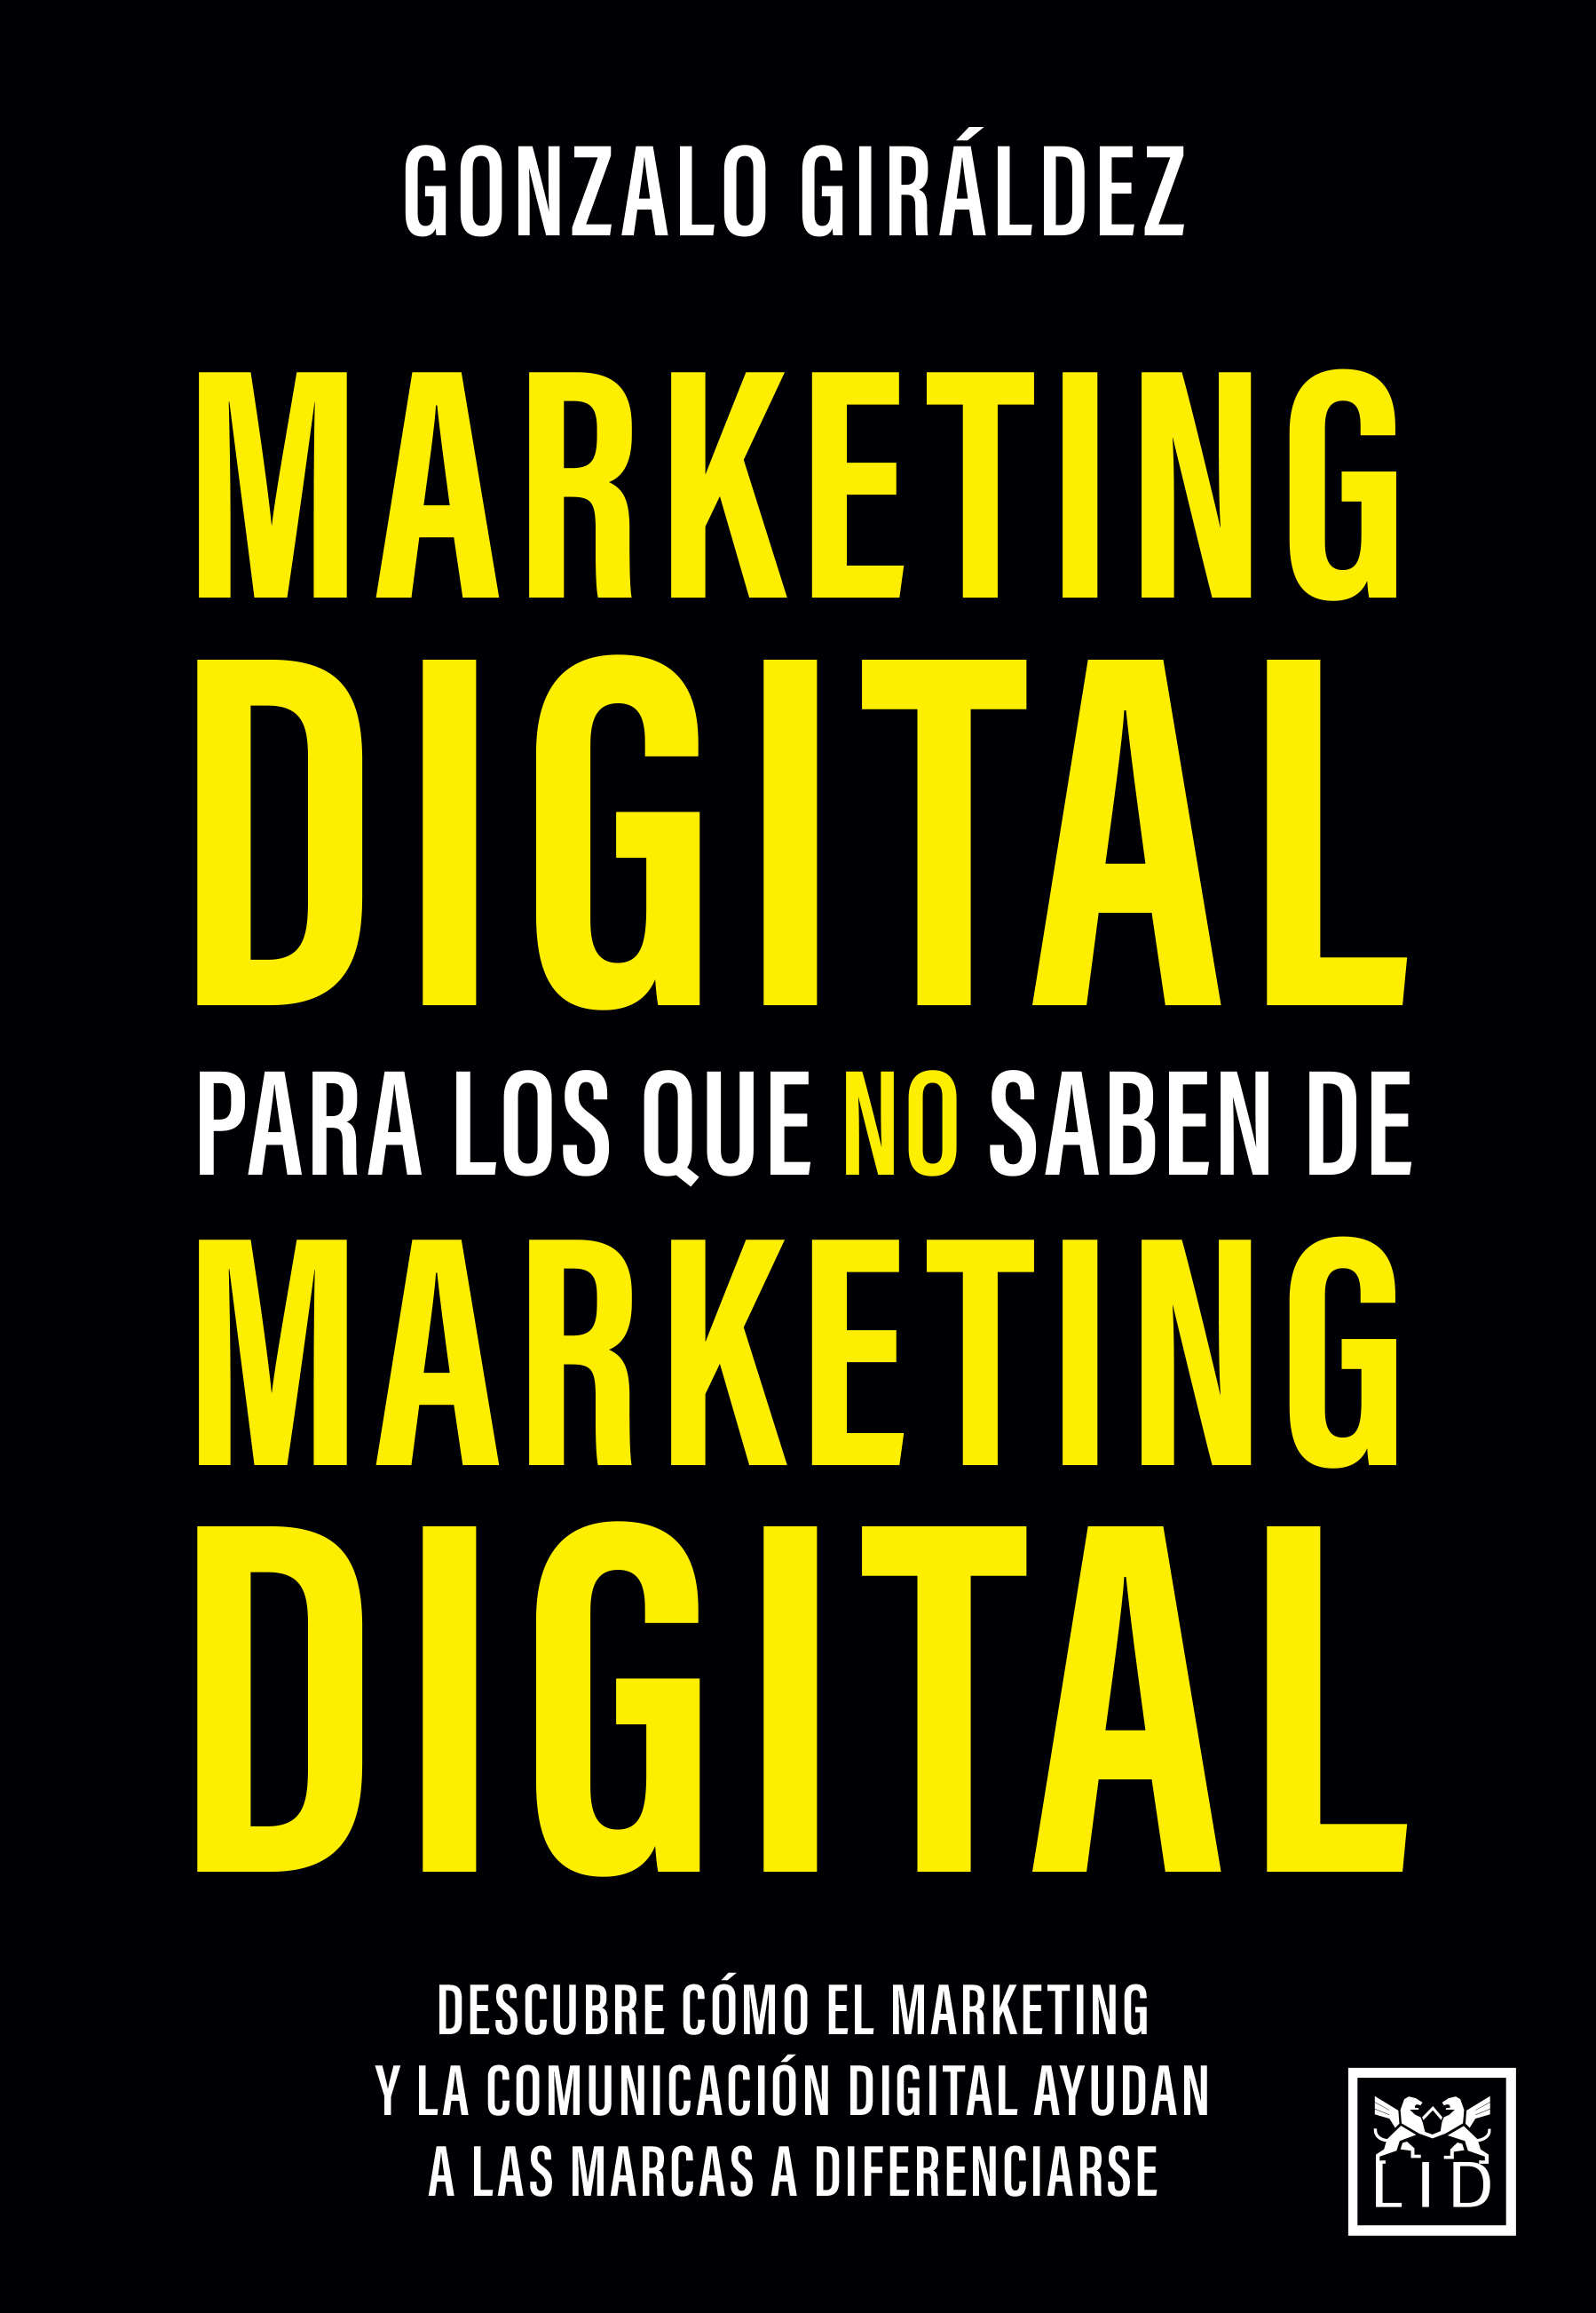 Marketing-digital-para-los-que-no-saben-de-marketing-digital